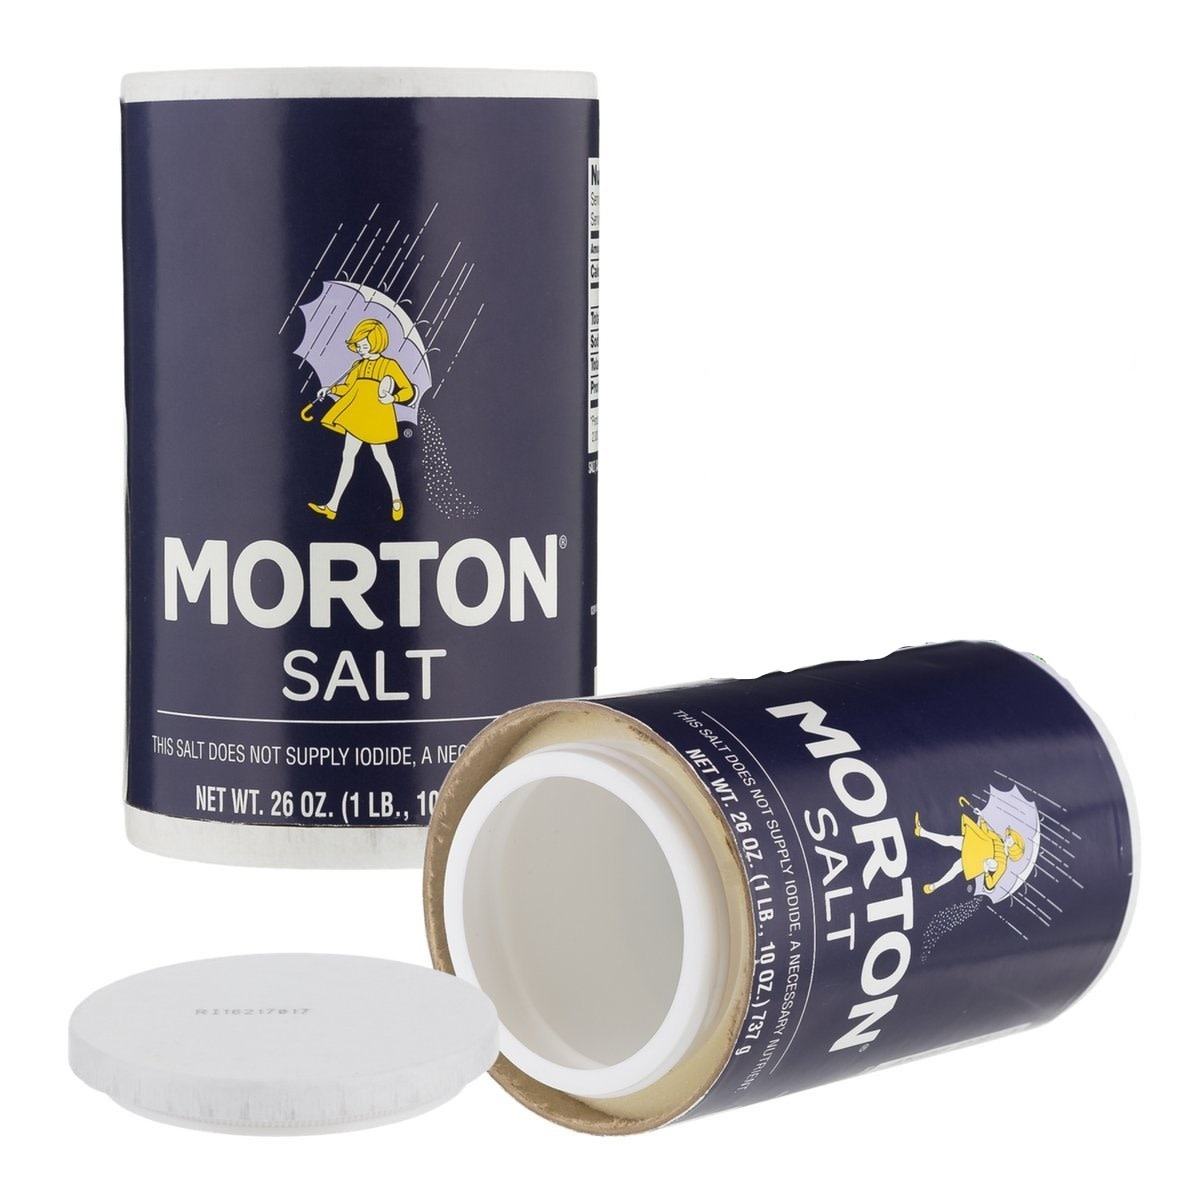 Morton Salt Security Cansafe